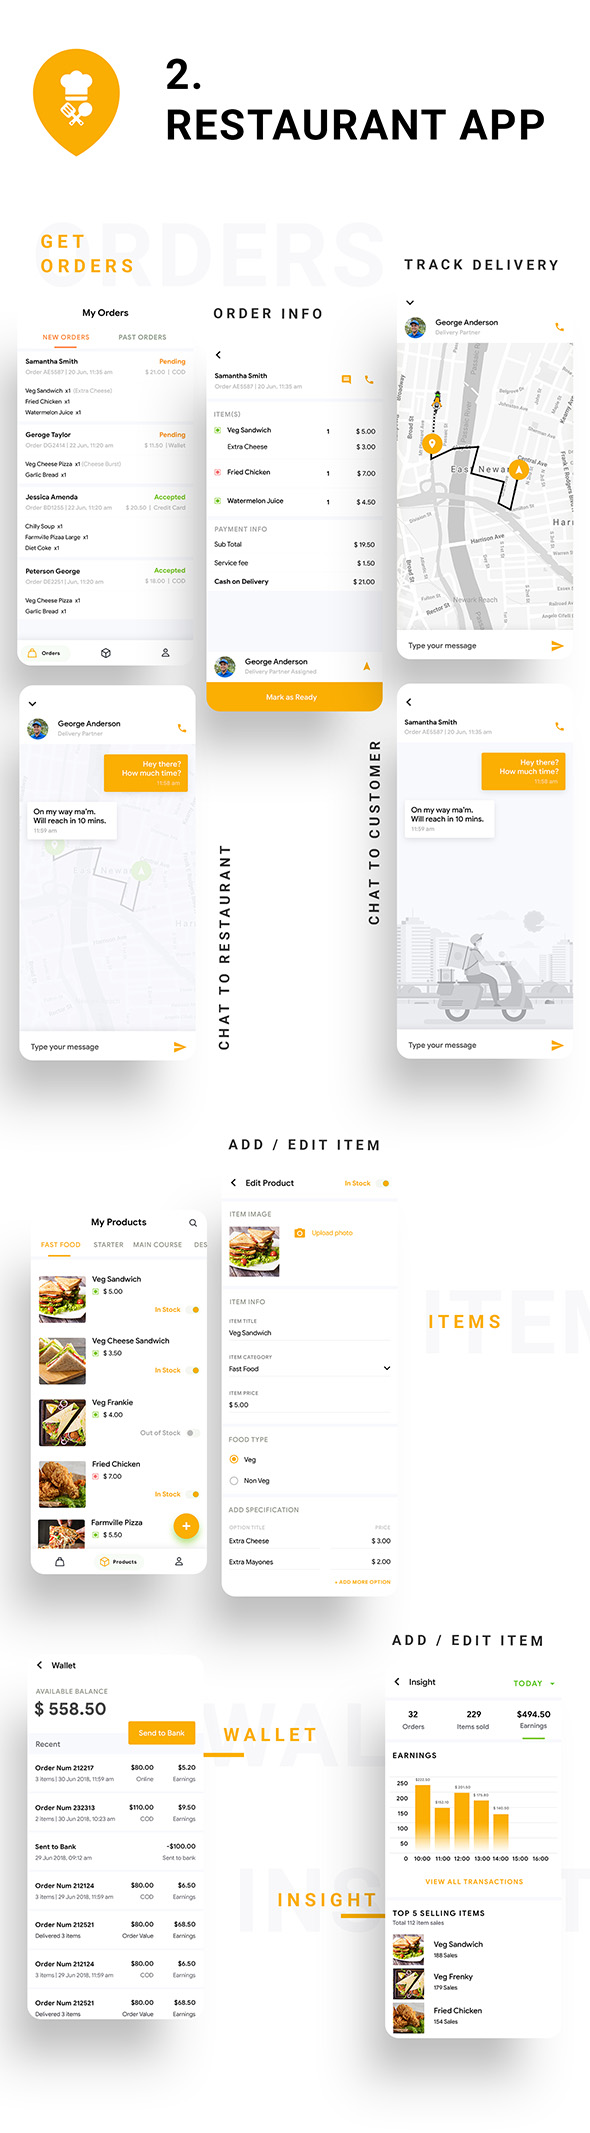 6 in 1 multi Restaurant Food Ordering App|Food Delivery App|Android+iOS App Template|Flutter Hungerz - 10